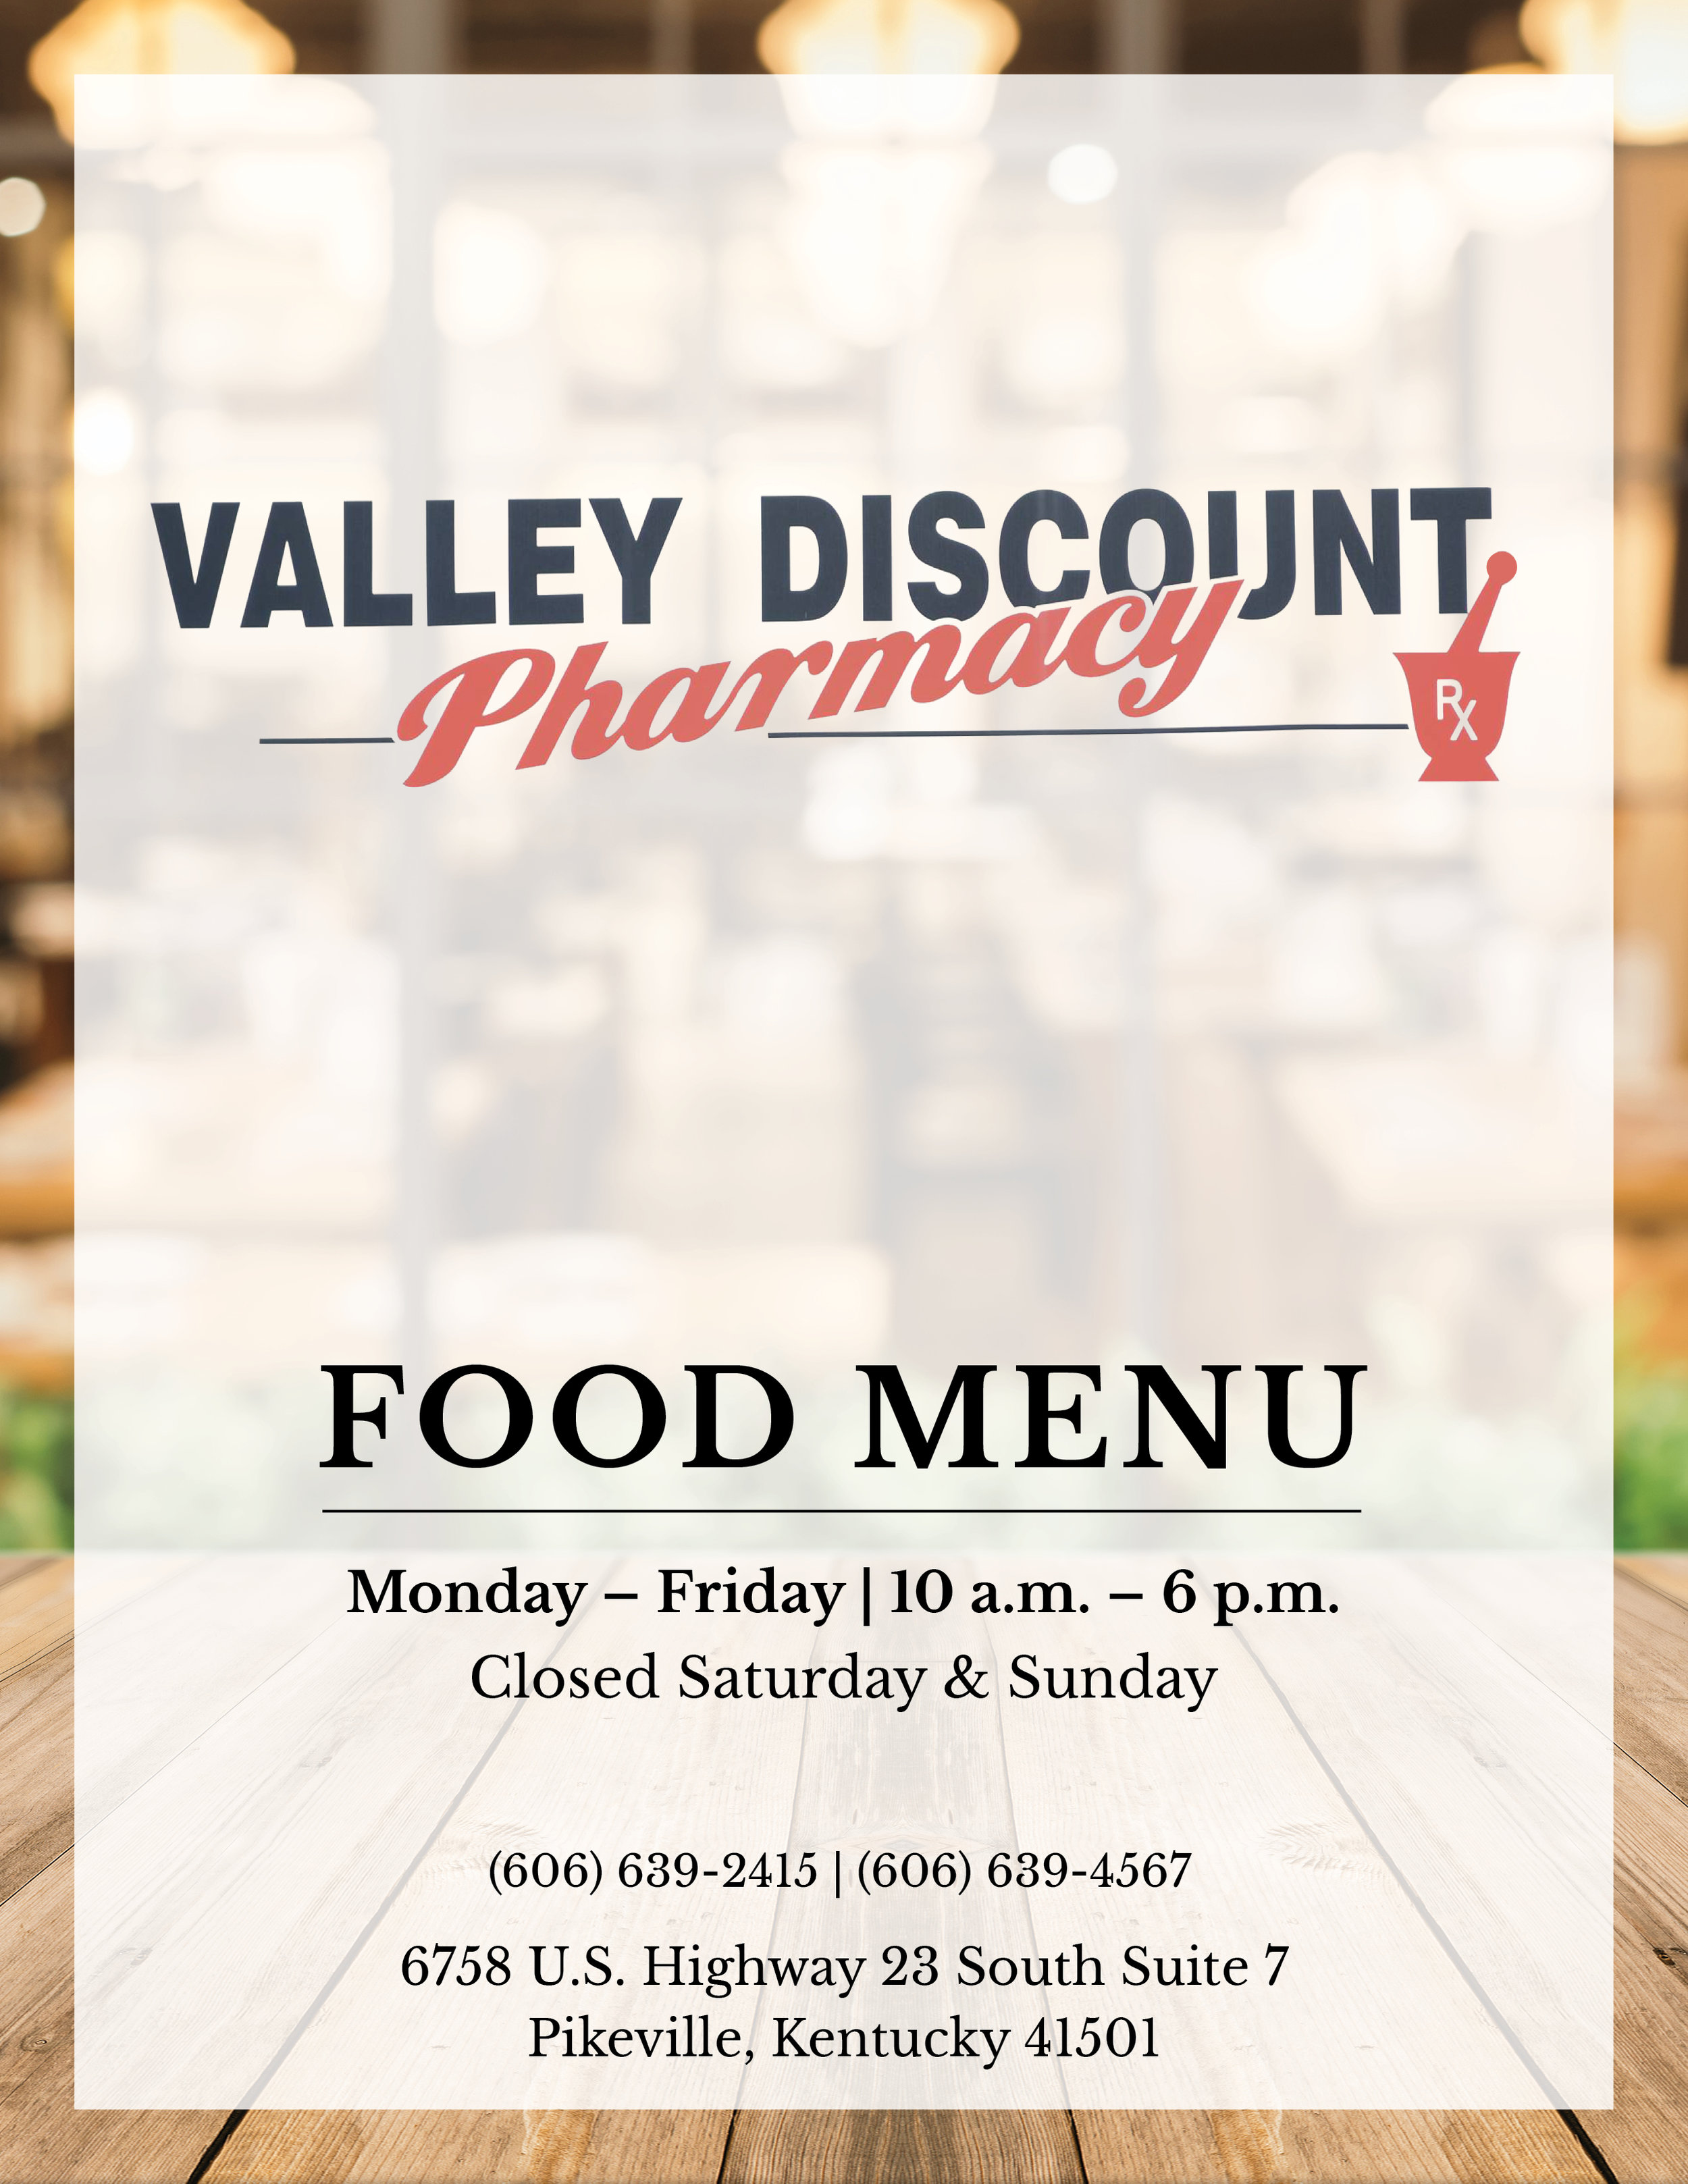 Valley Discount Pharmacy Menu_v7_10_18_17.jpg